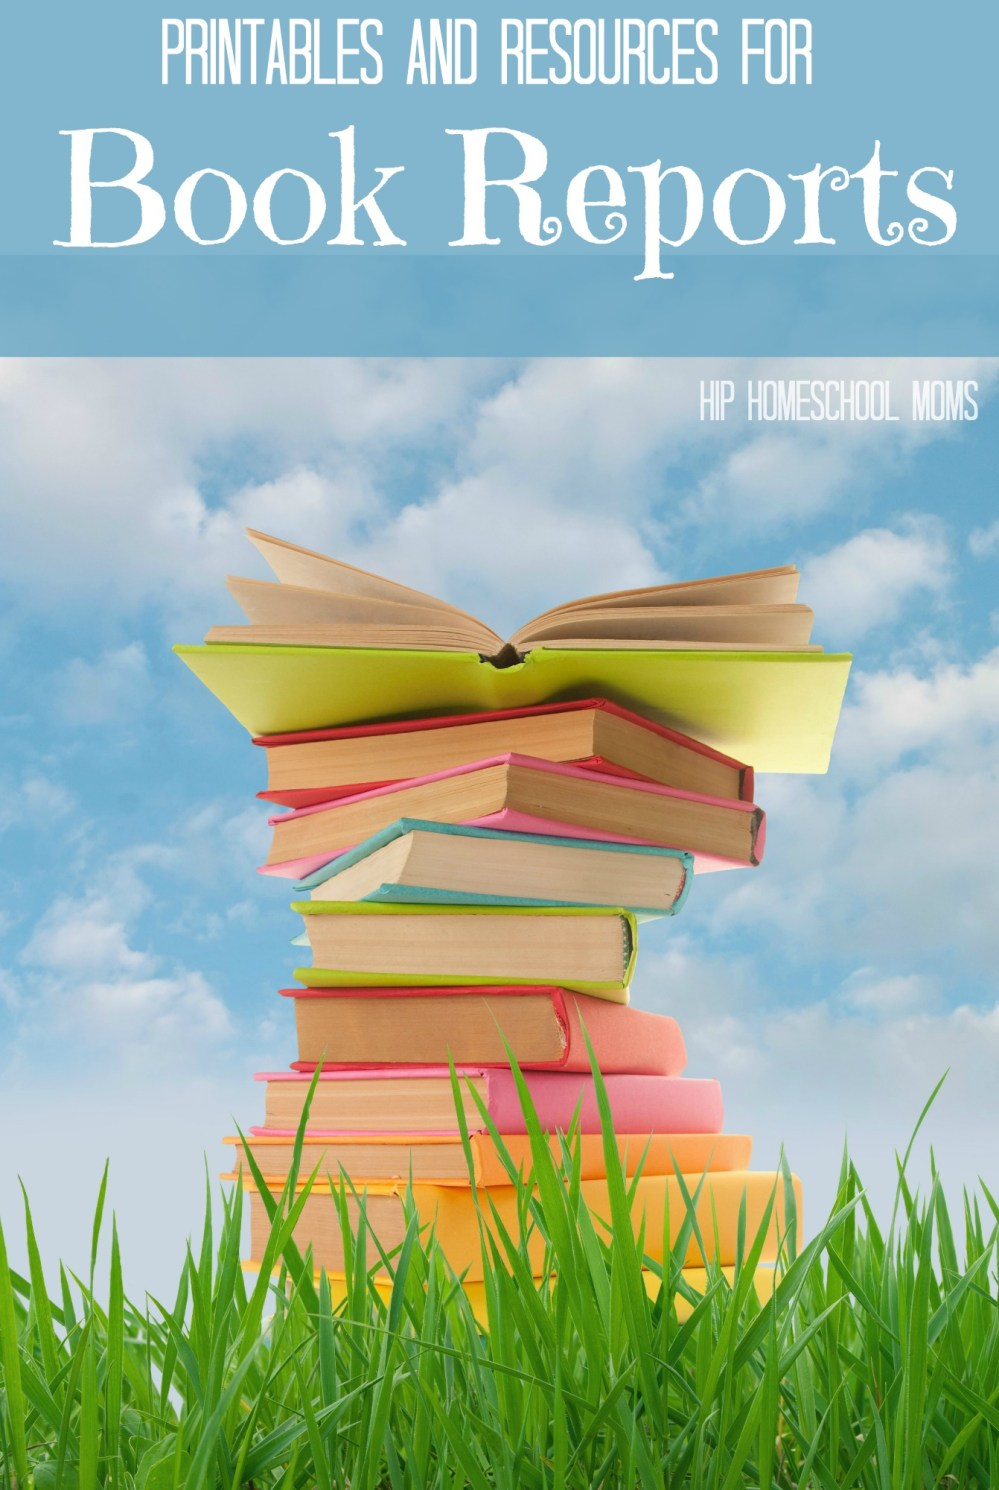 medium resolution of Printables and Resources for Book Reports   Hip Homeschool Moms